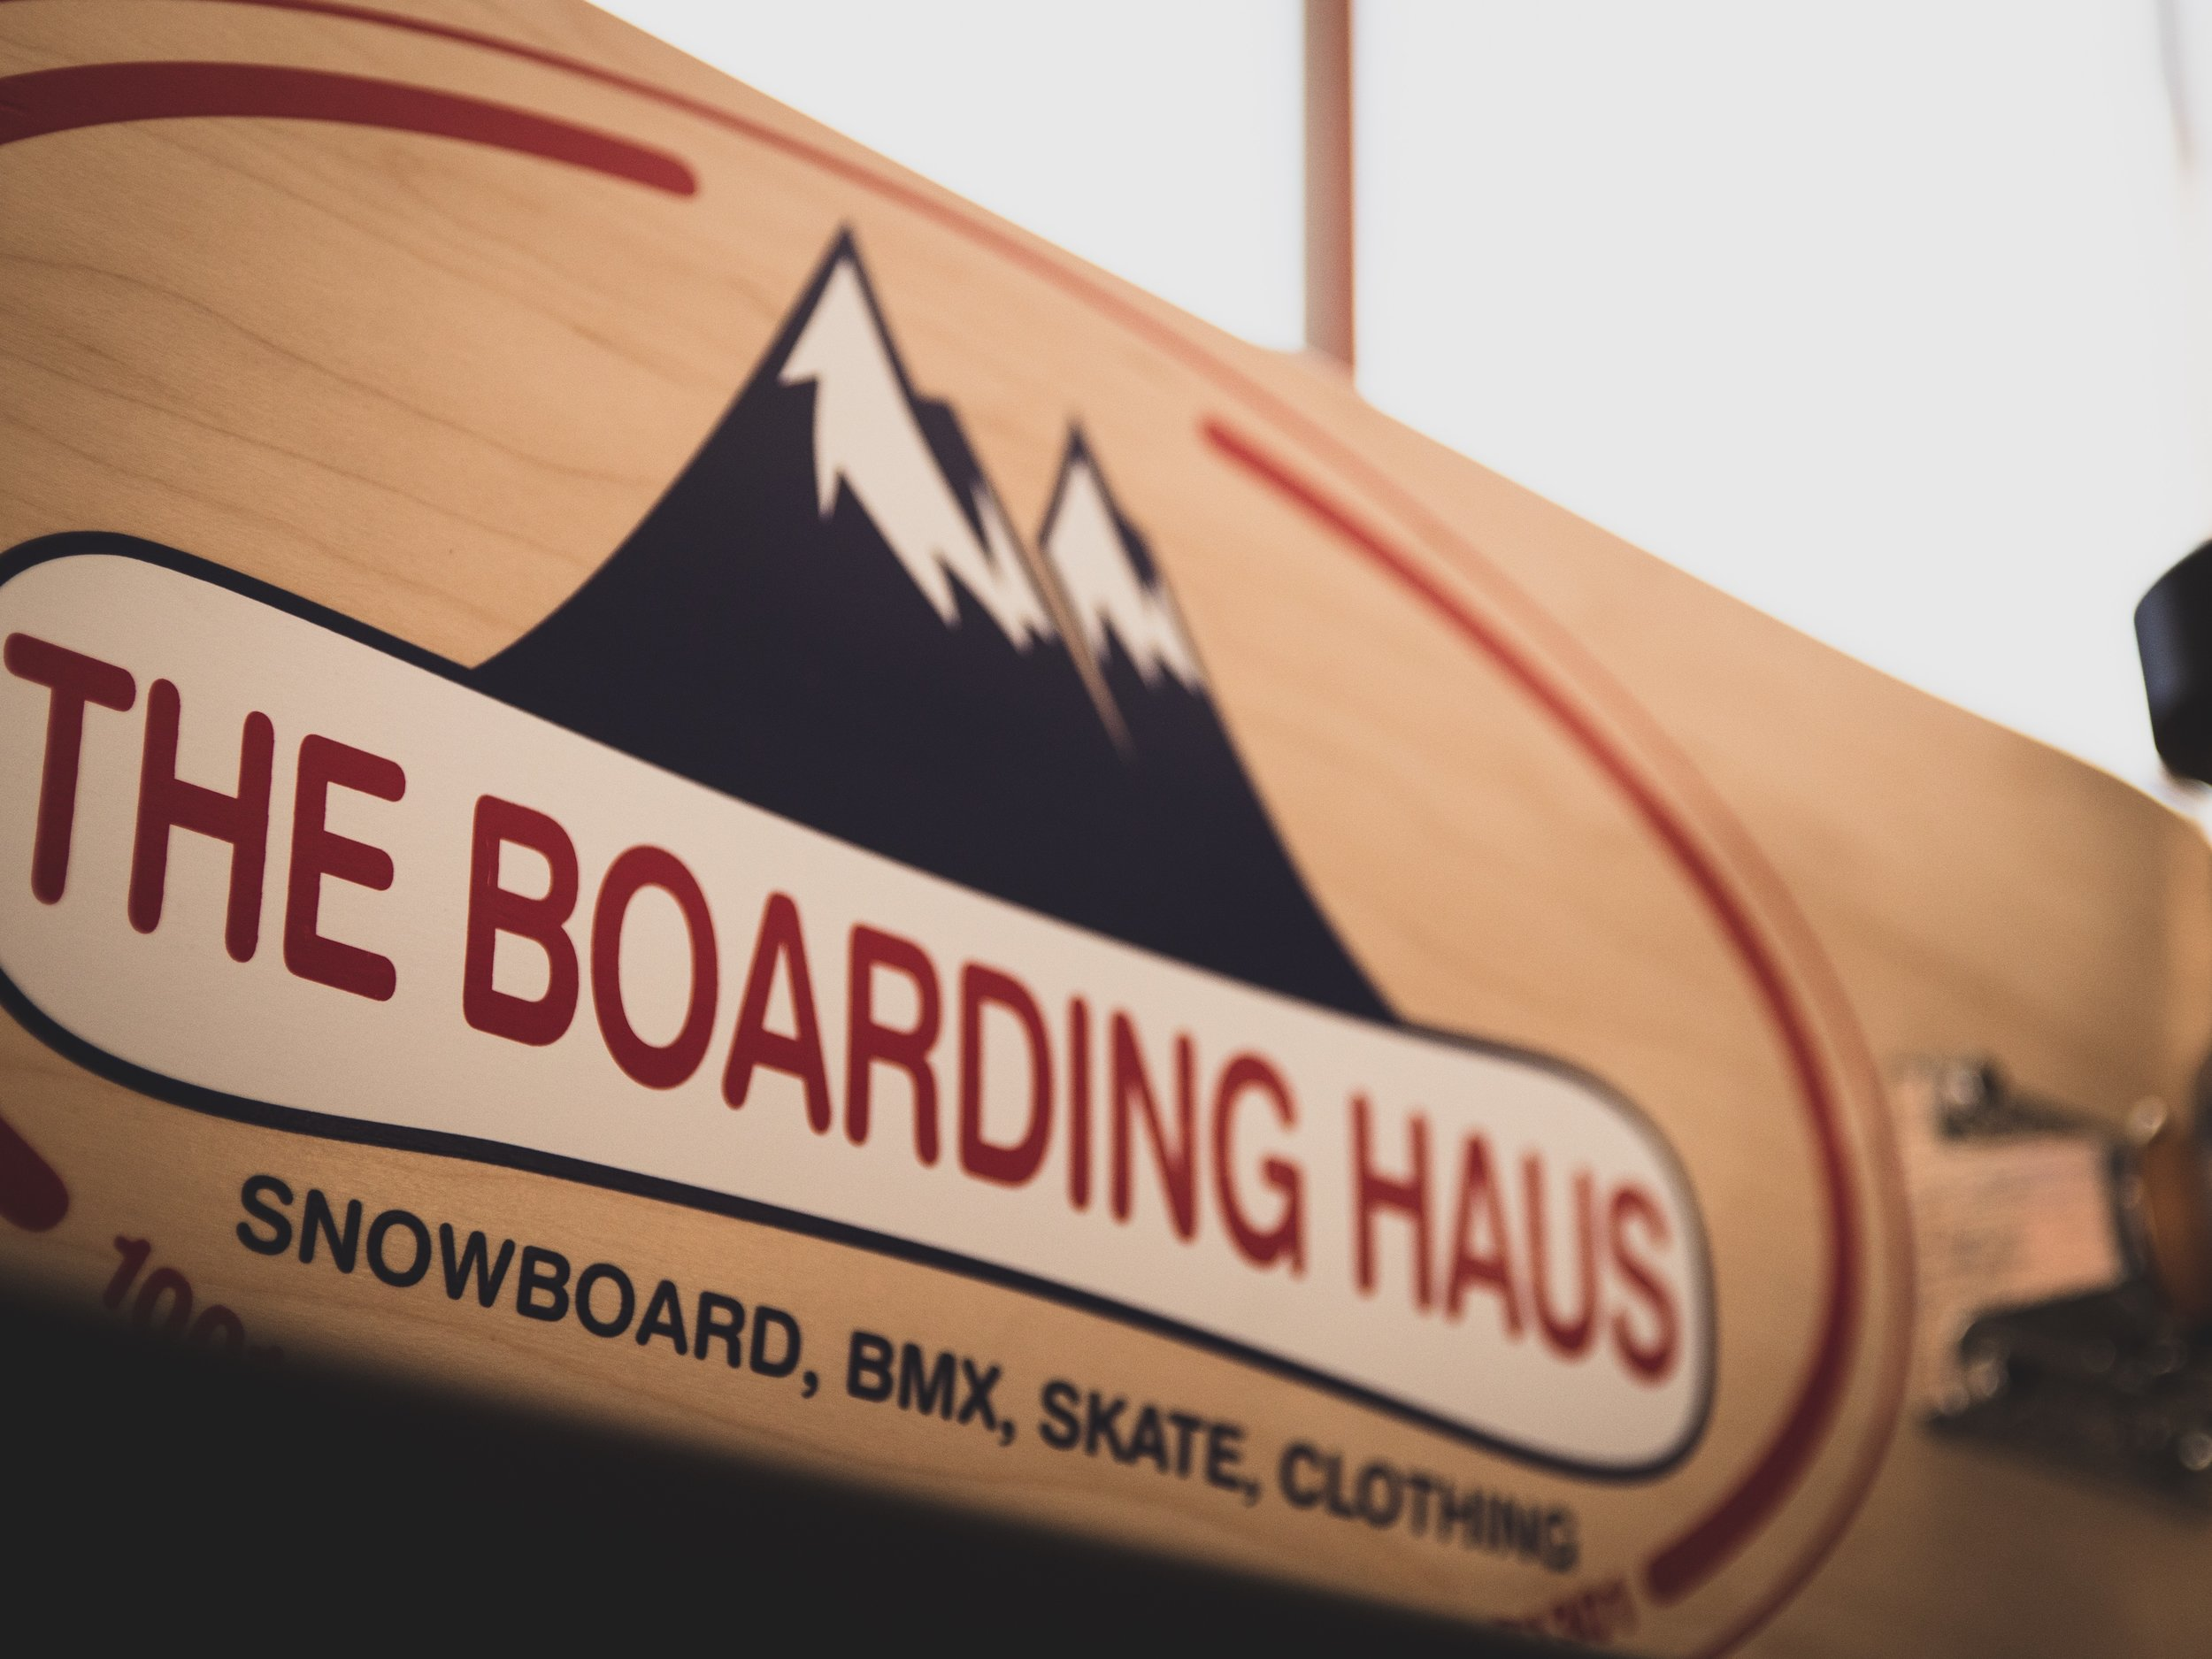 ESTABLISHED IN 1995, - THE BOARDING HAUS HAS BEEN PROVIDING UNMATCHED SERVICE AND QUALITY PRODUCTS SINCE DAY ONE. WE PRIDE OURSELVES IN HELPING TO PROMOTE A POSITIVE CULTURE FOR THE SKATE, SNOWBOARD, AND BMX WORLD.